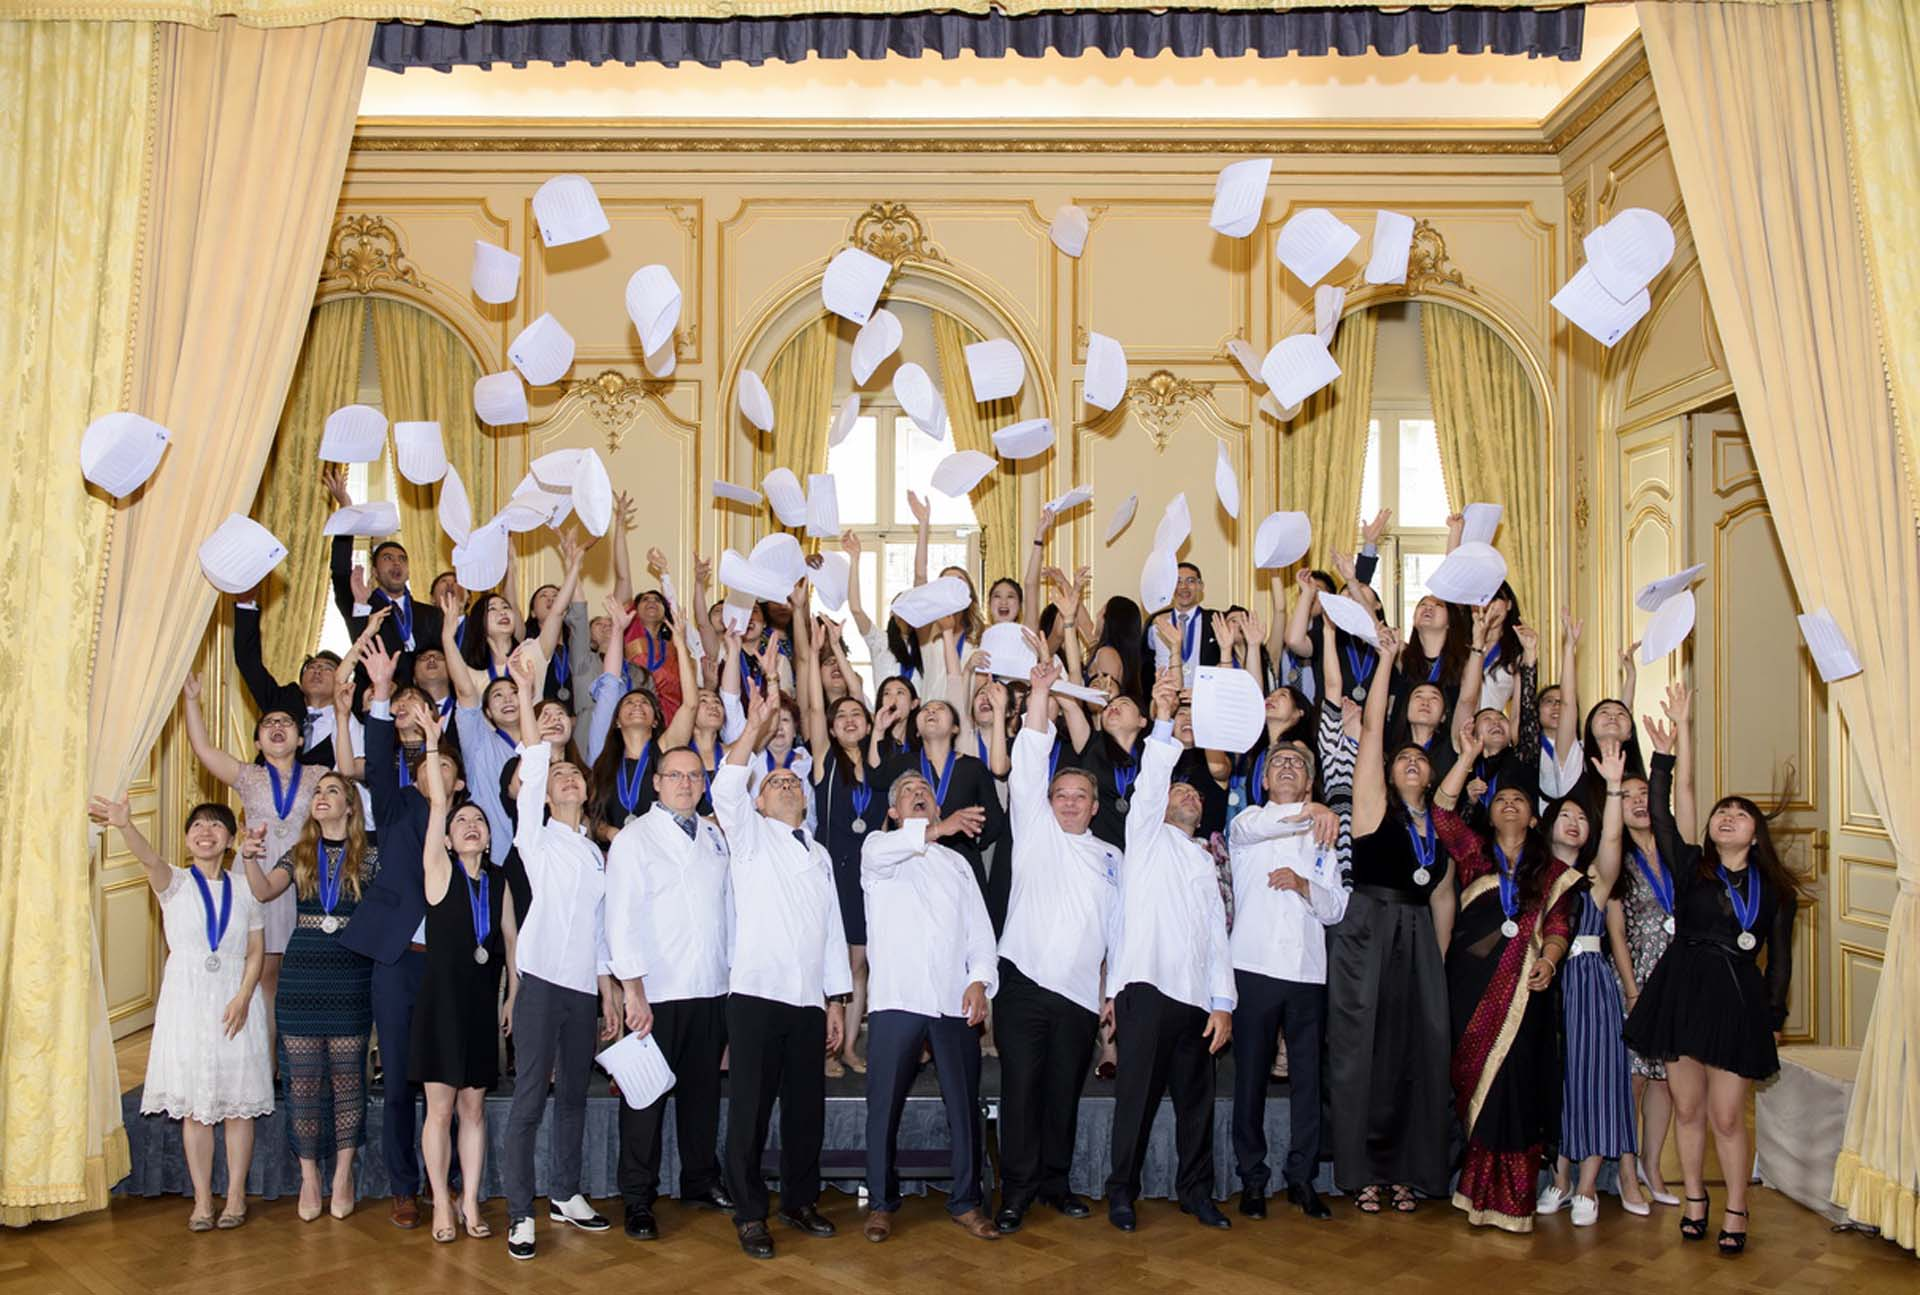 culinary arts graduation Le Cordon Bleu Paris